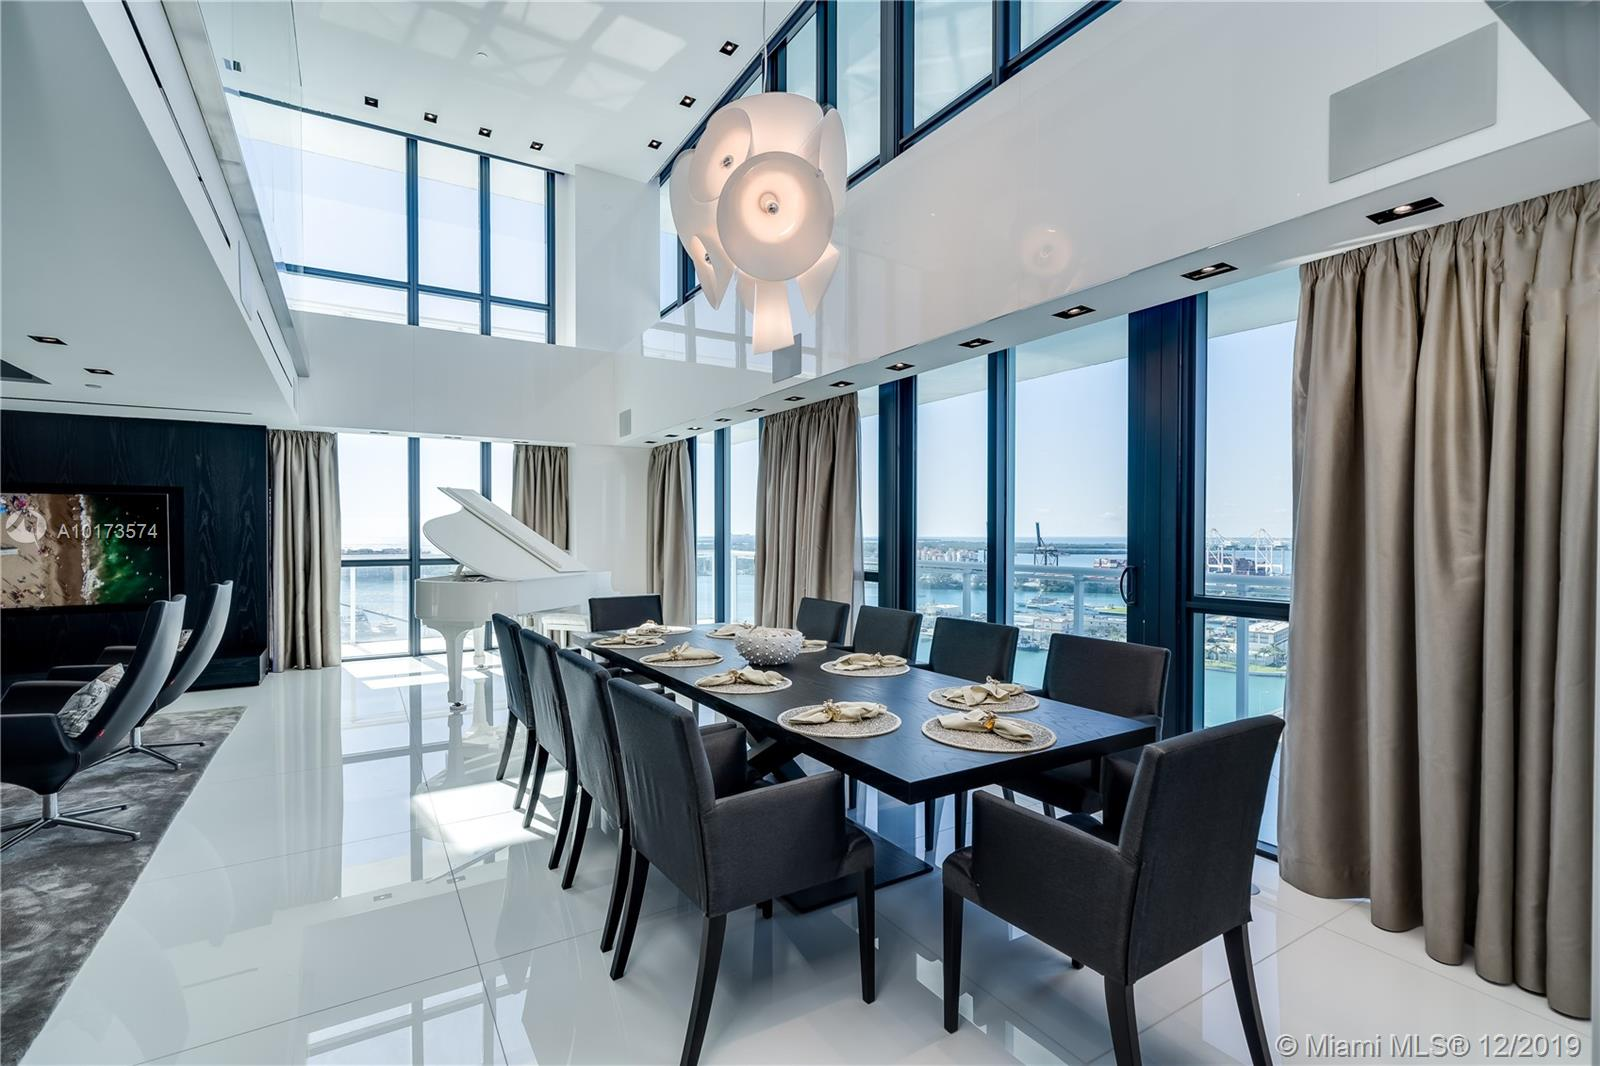 TOTALLY RENOVATED ONE OF THE KIND TWO STORY PENTHOUSE WITH SKYLINE MIAMI, STAR ISLAND AND OCEAN VIEWS. CUSTOM GLASS STAIRS, WET BAR, WINE ROOM, FOUR BEDROOMS WITH WALKING CLOSETS, POWDER ROOM AND OFFICE WITH FULLY INTEGRATED CRESTRON AND LUTRON SYSTEMS. MIELE AND SUBZERO APPLIANCES.